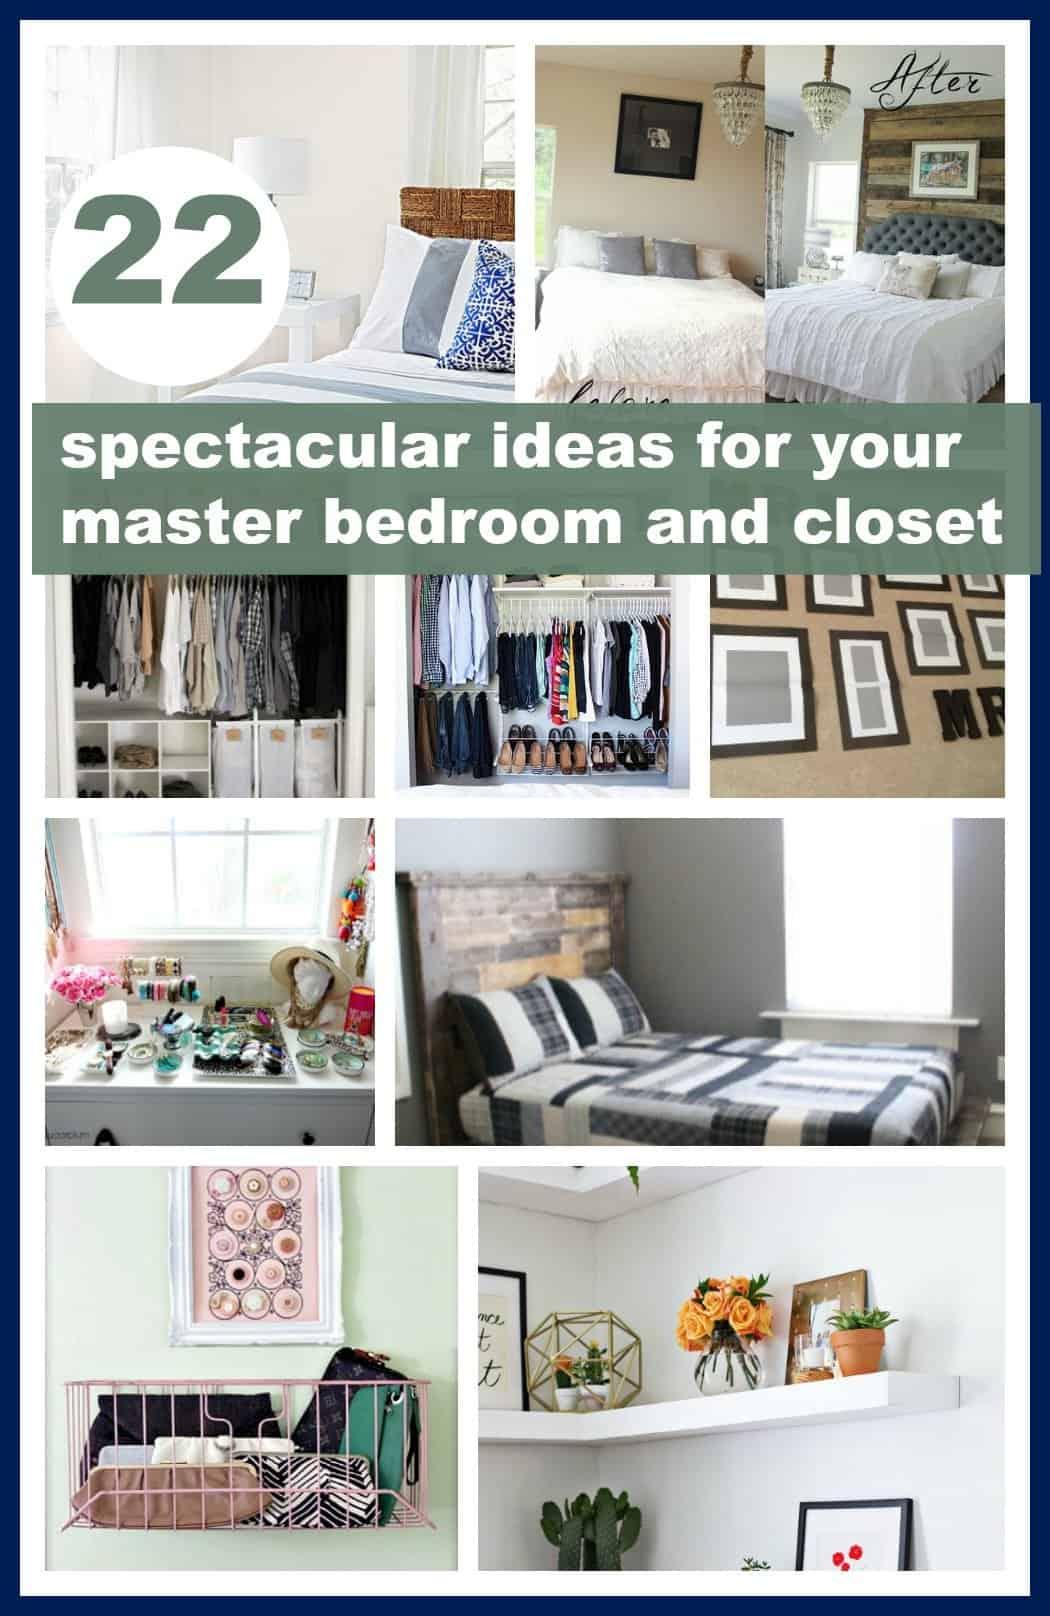 22 Spectacular Ideas For Your Master Bedroom And Closet A Fresh Start On A